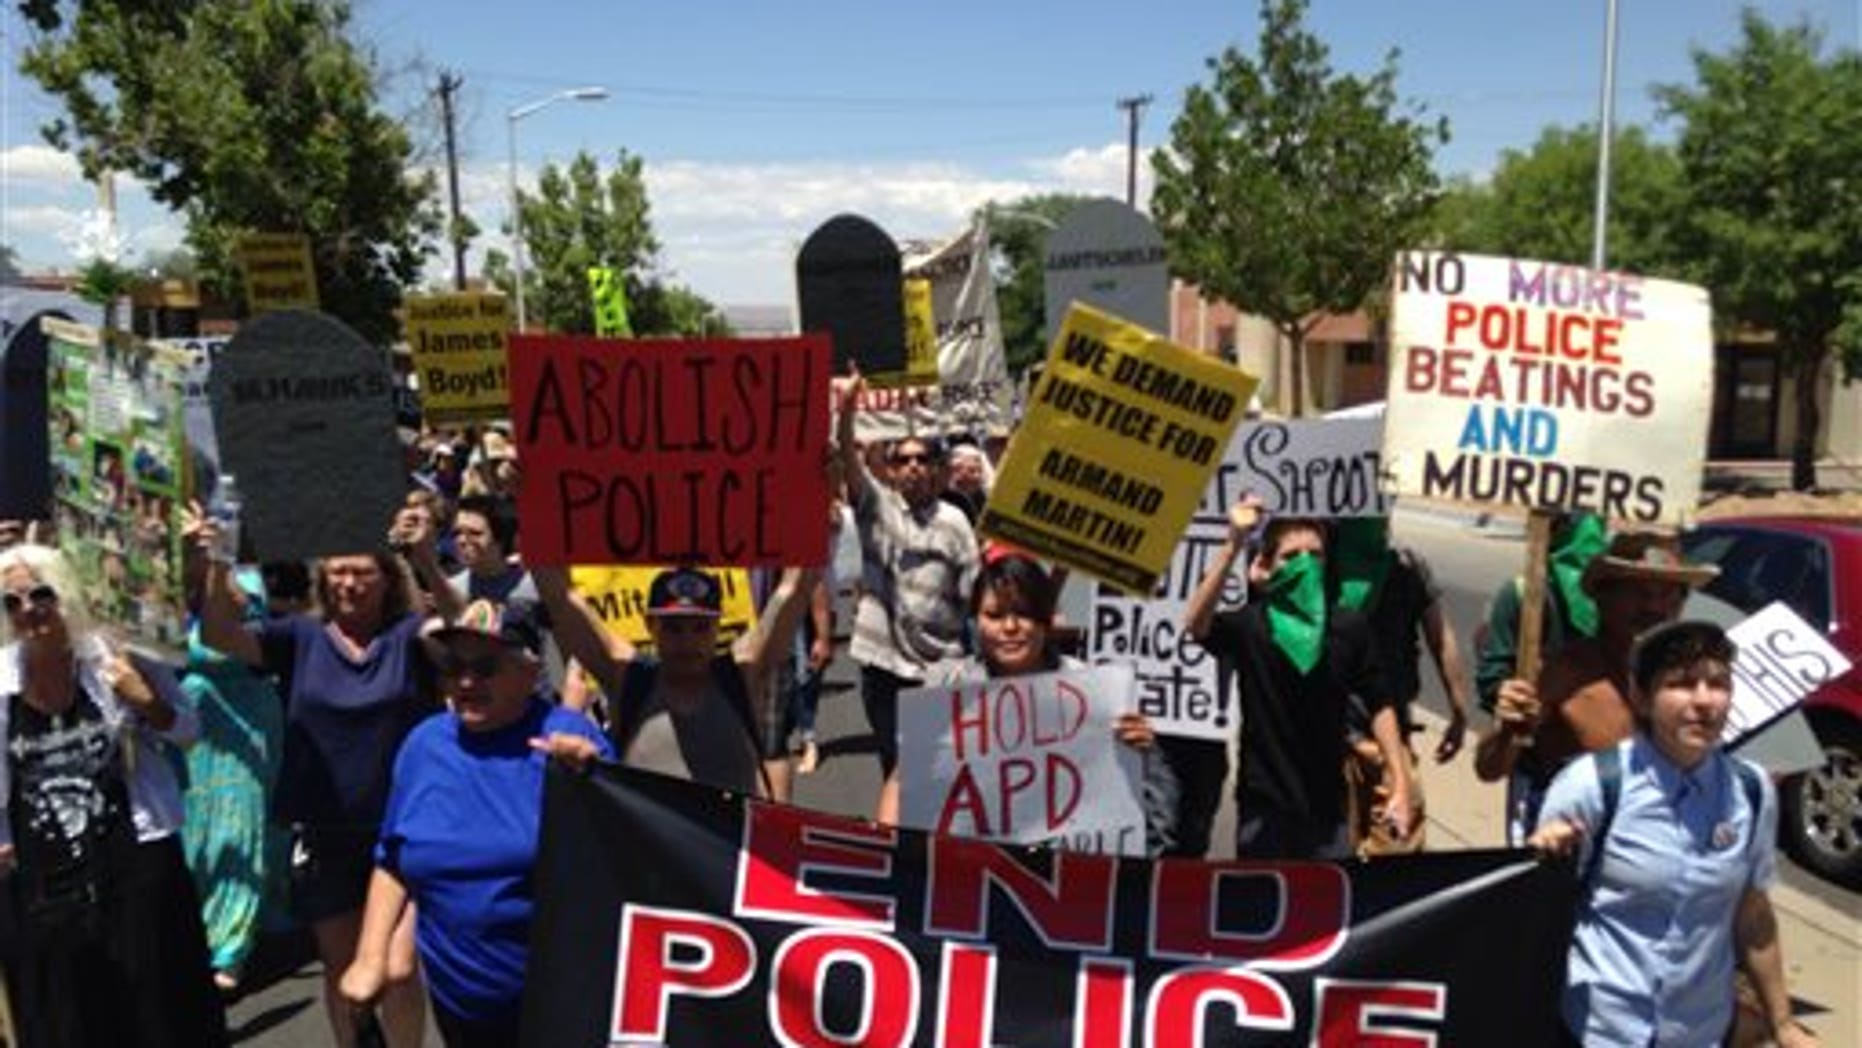 In this photo courtesy of David Correia, protesters march in a rally on Saturday, June 21, 2014 in Albuquerque, N.M. Critics of the Albuquerque Police Department say the march is aimed at pushing for drastic changes within Albuquerque police following a harsh U.S. Justice Department report over the agencys use of force. (AP Photo/Courtesy of David Correia)